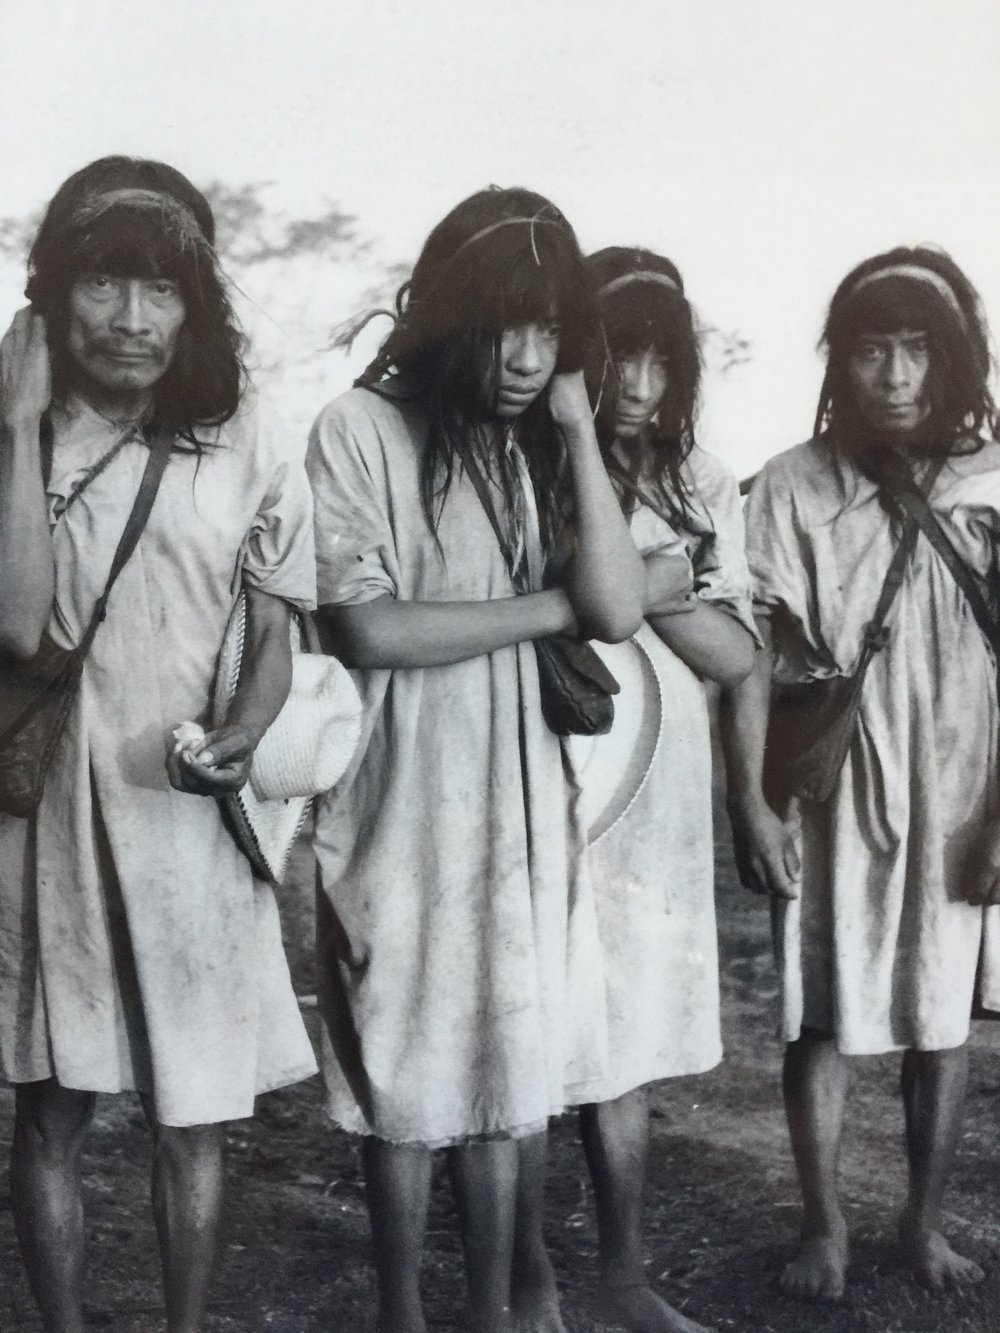 The primitive Lacondon people escaped the Spanish rule and survived for 400 years in the jungles of Chiapas near the border of Guatemala until they were discovered in the 19th century. This is a photo of a photo taken by Gertrude Duby Blom in the early 1900's.